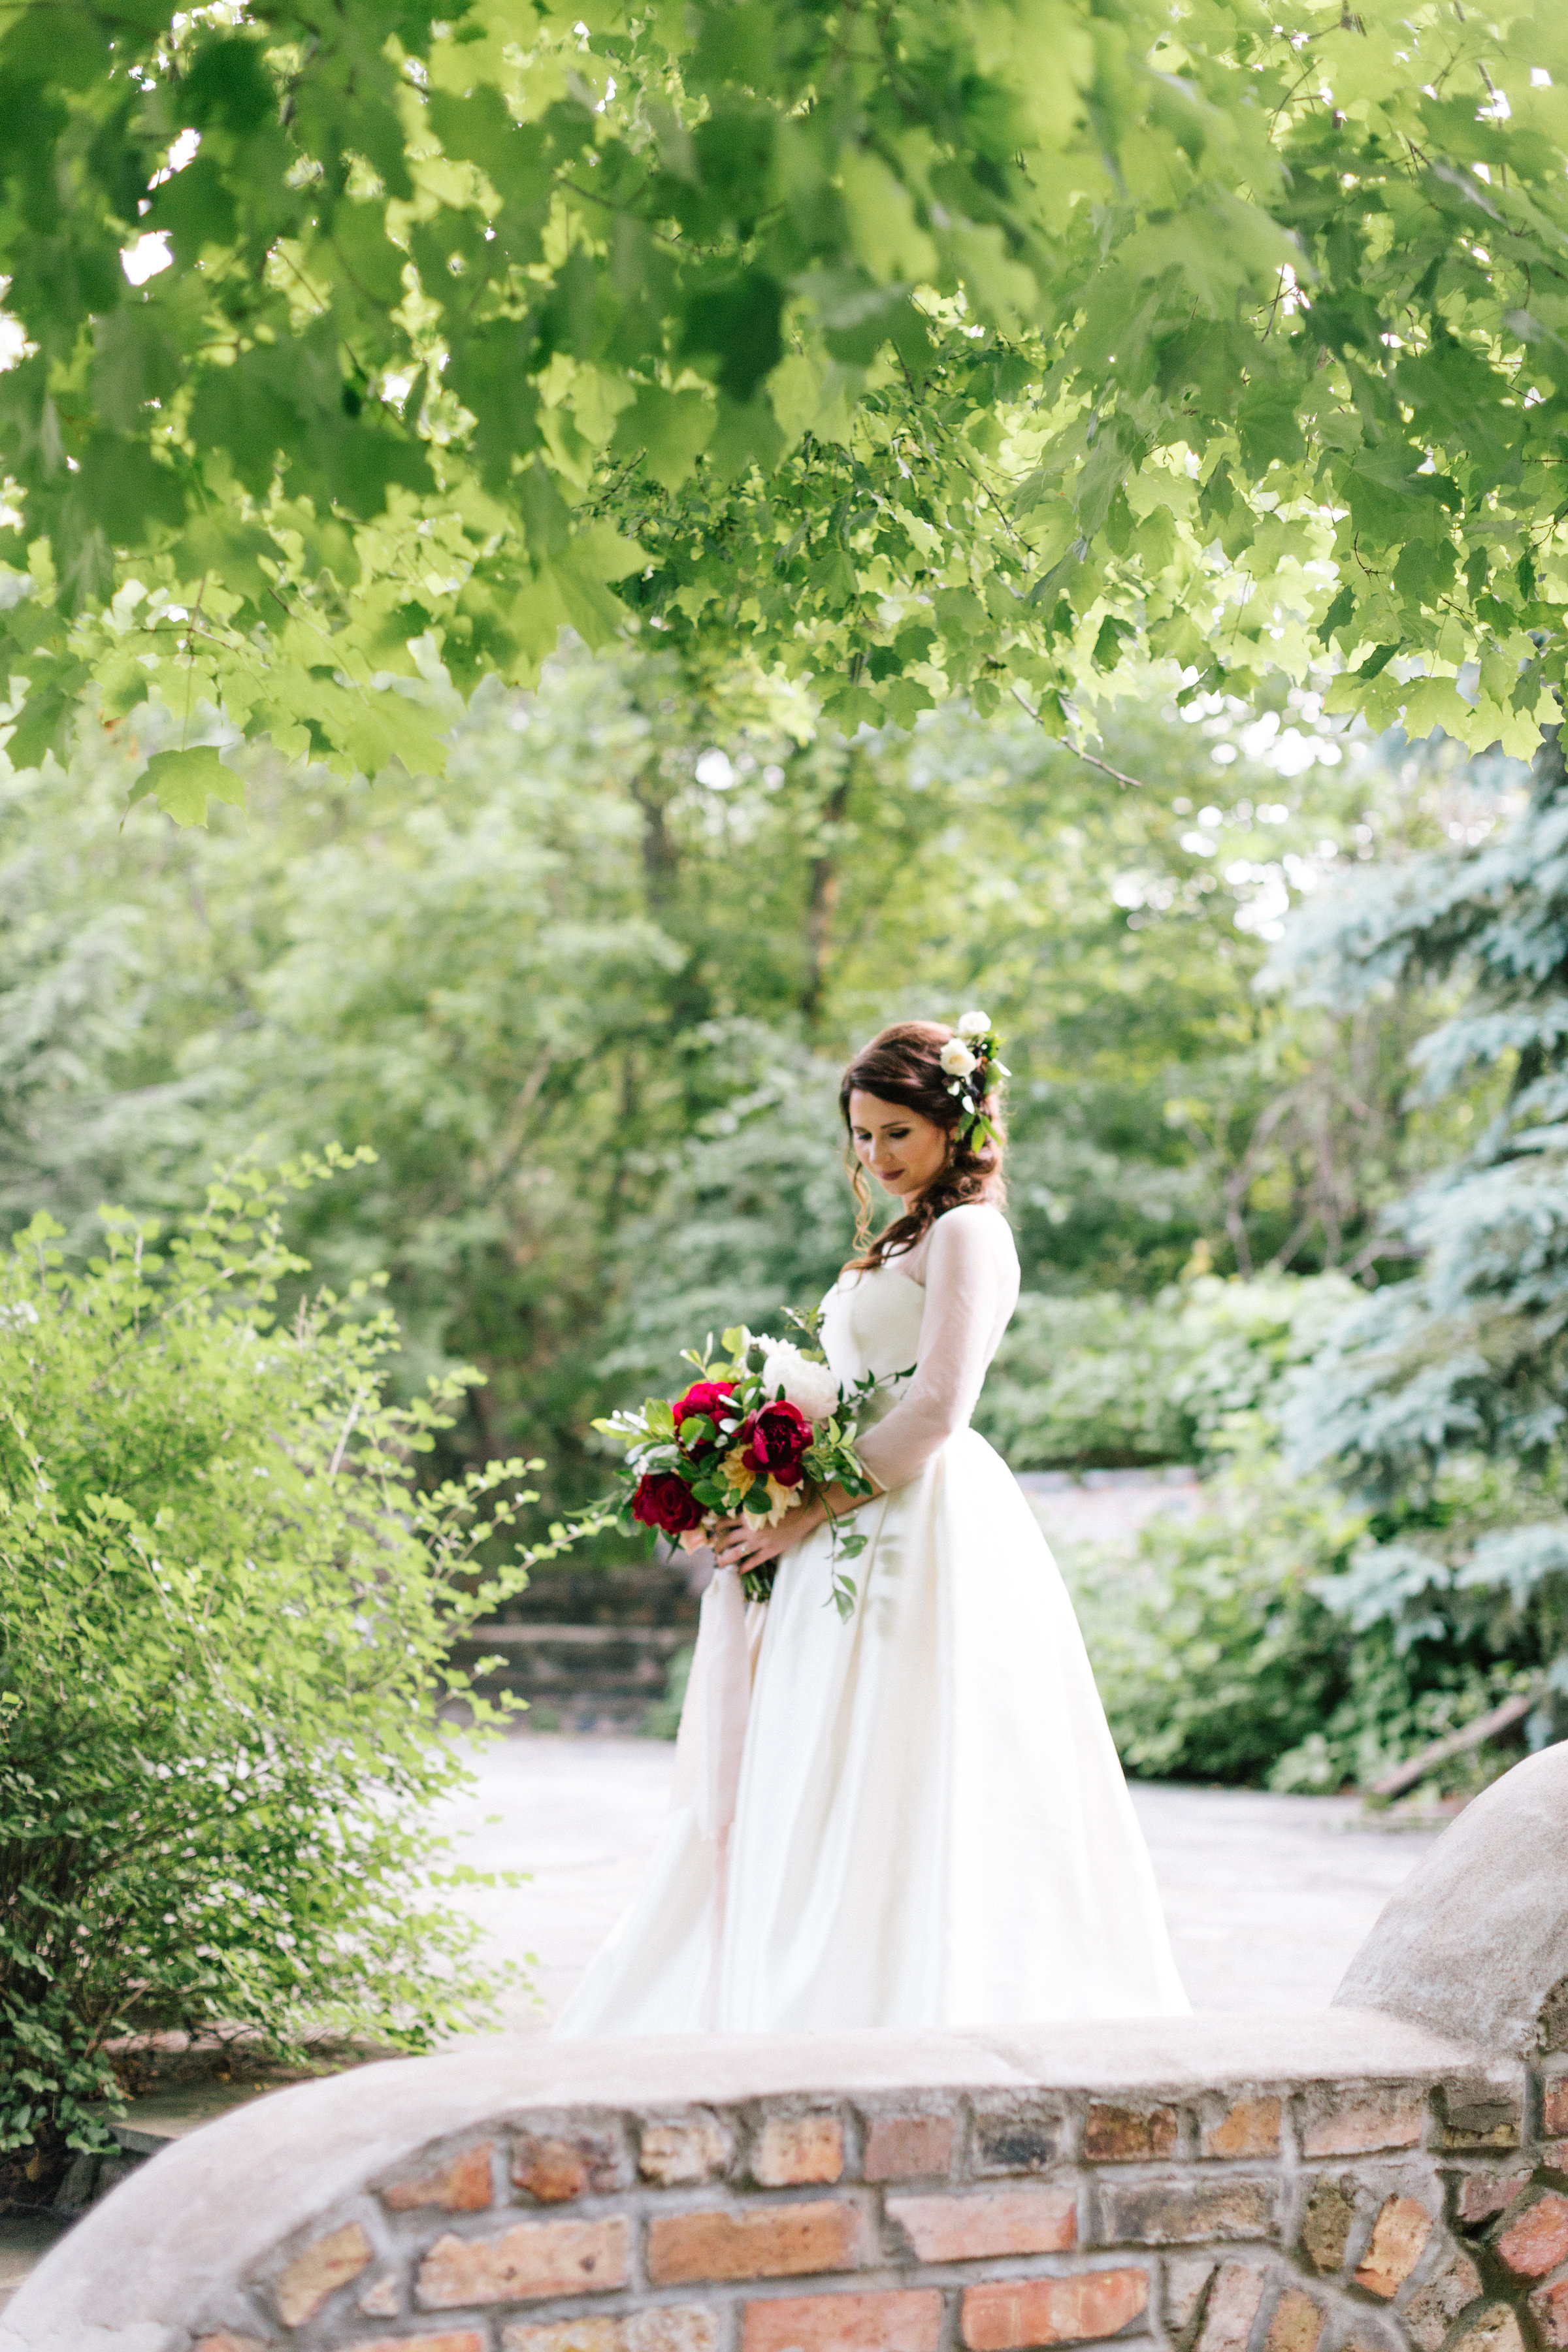 Allison_Hopperstad_Photography_Acowsay_Wedding_Bride_2.JPG